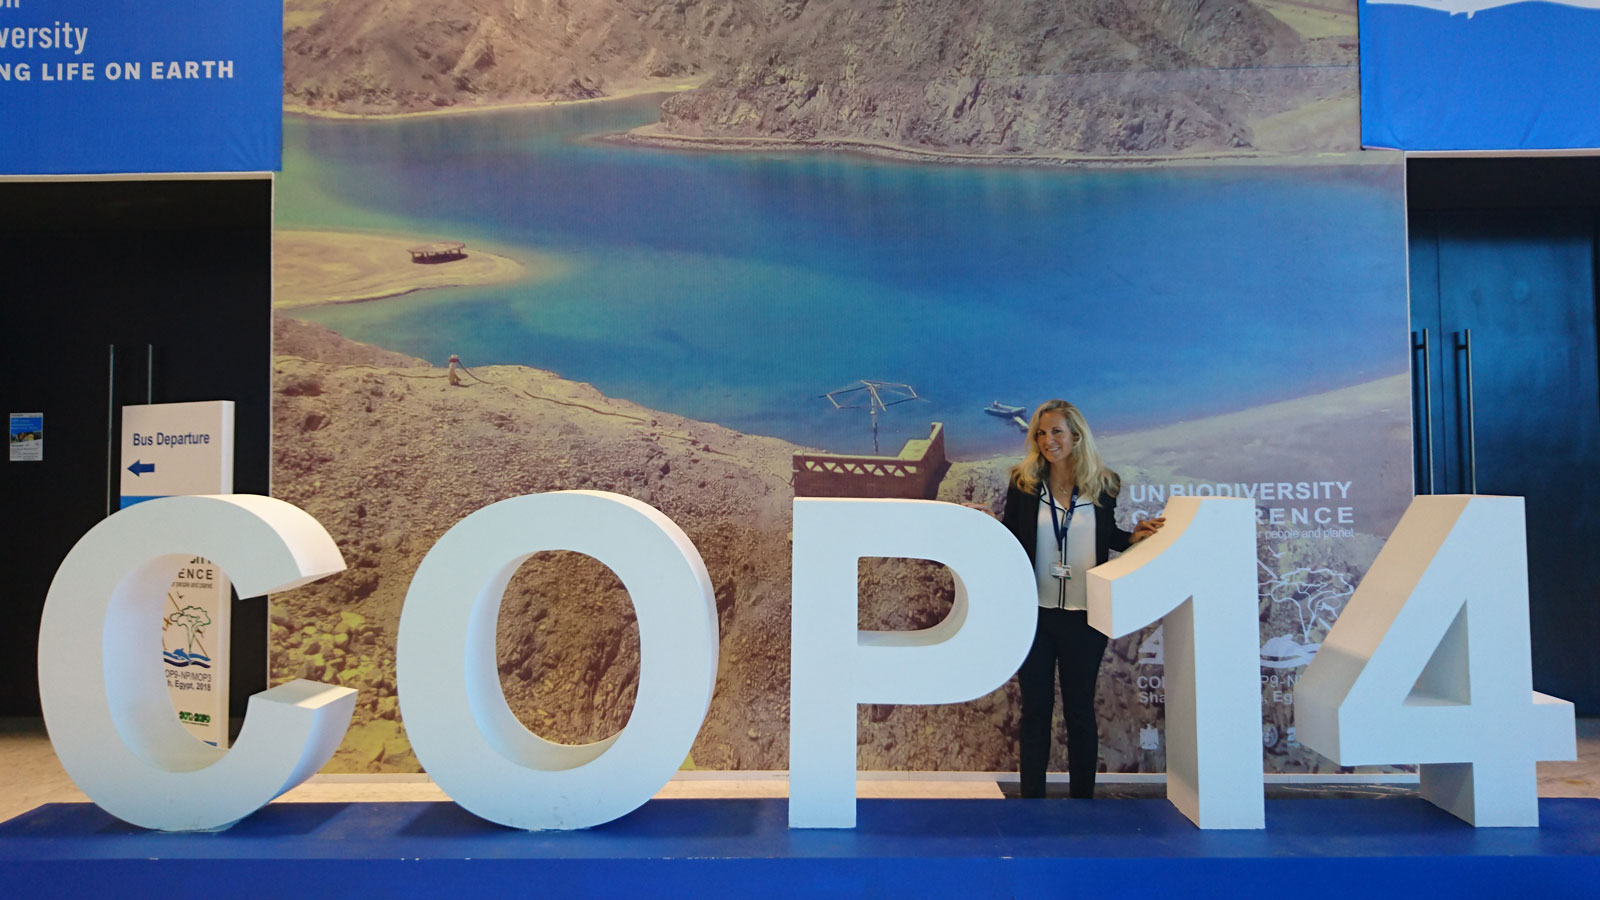 Angela Ziltener at the UN Biodiversity Conference at Sharm El Sheikh